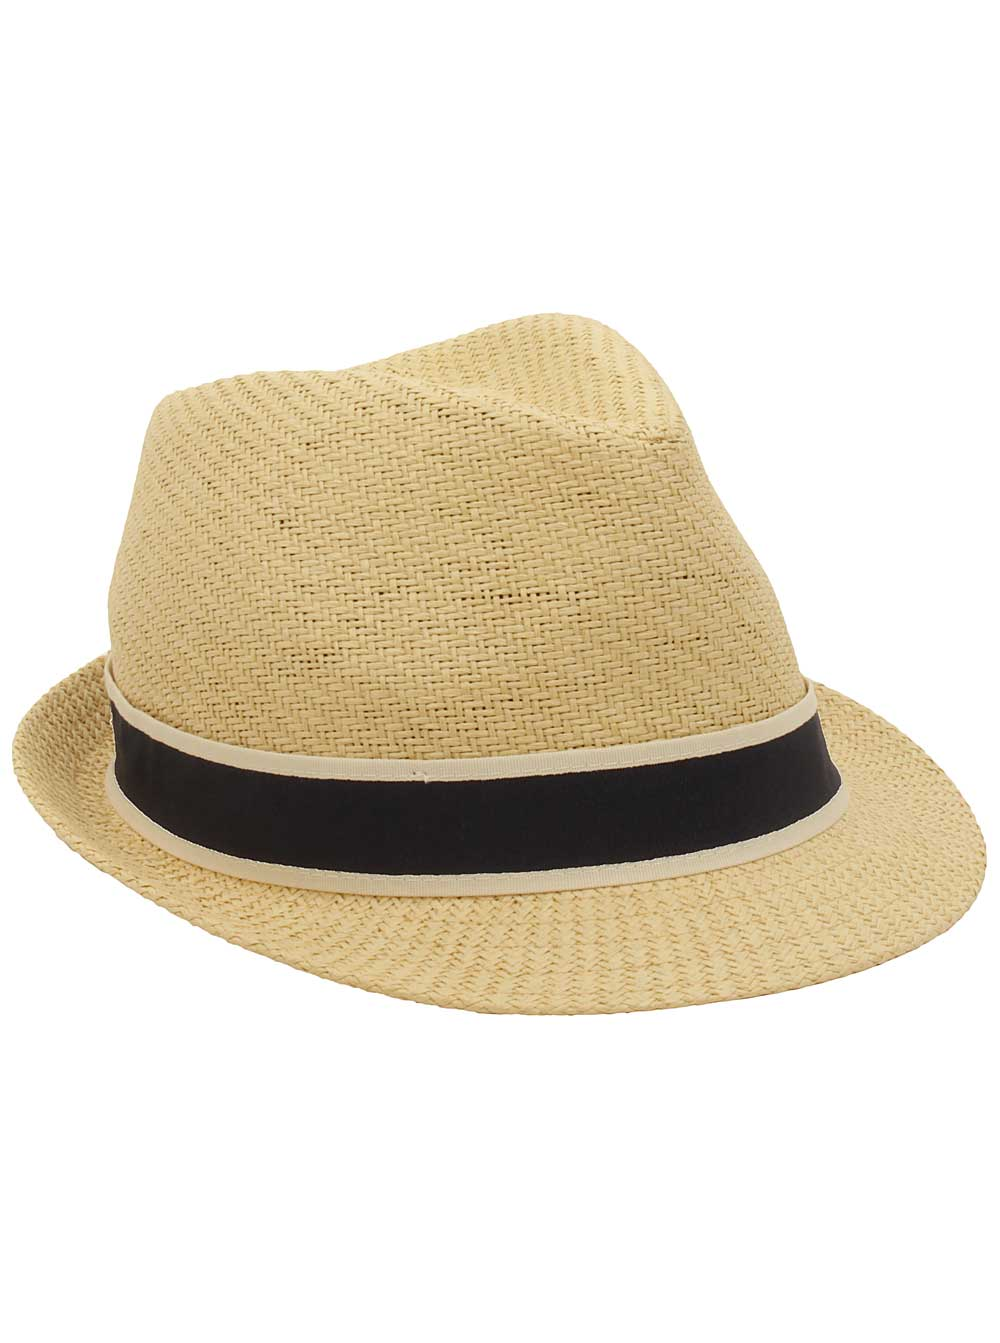 Goorin Bros Mens Killian Fedora